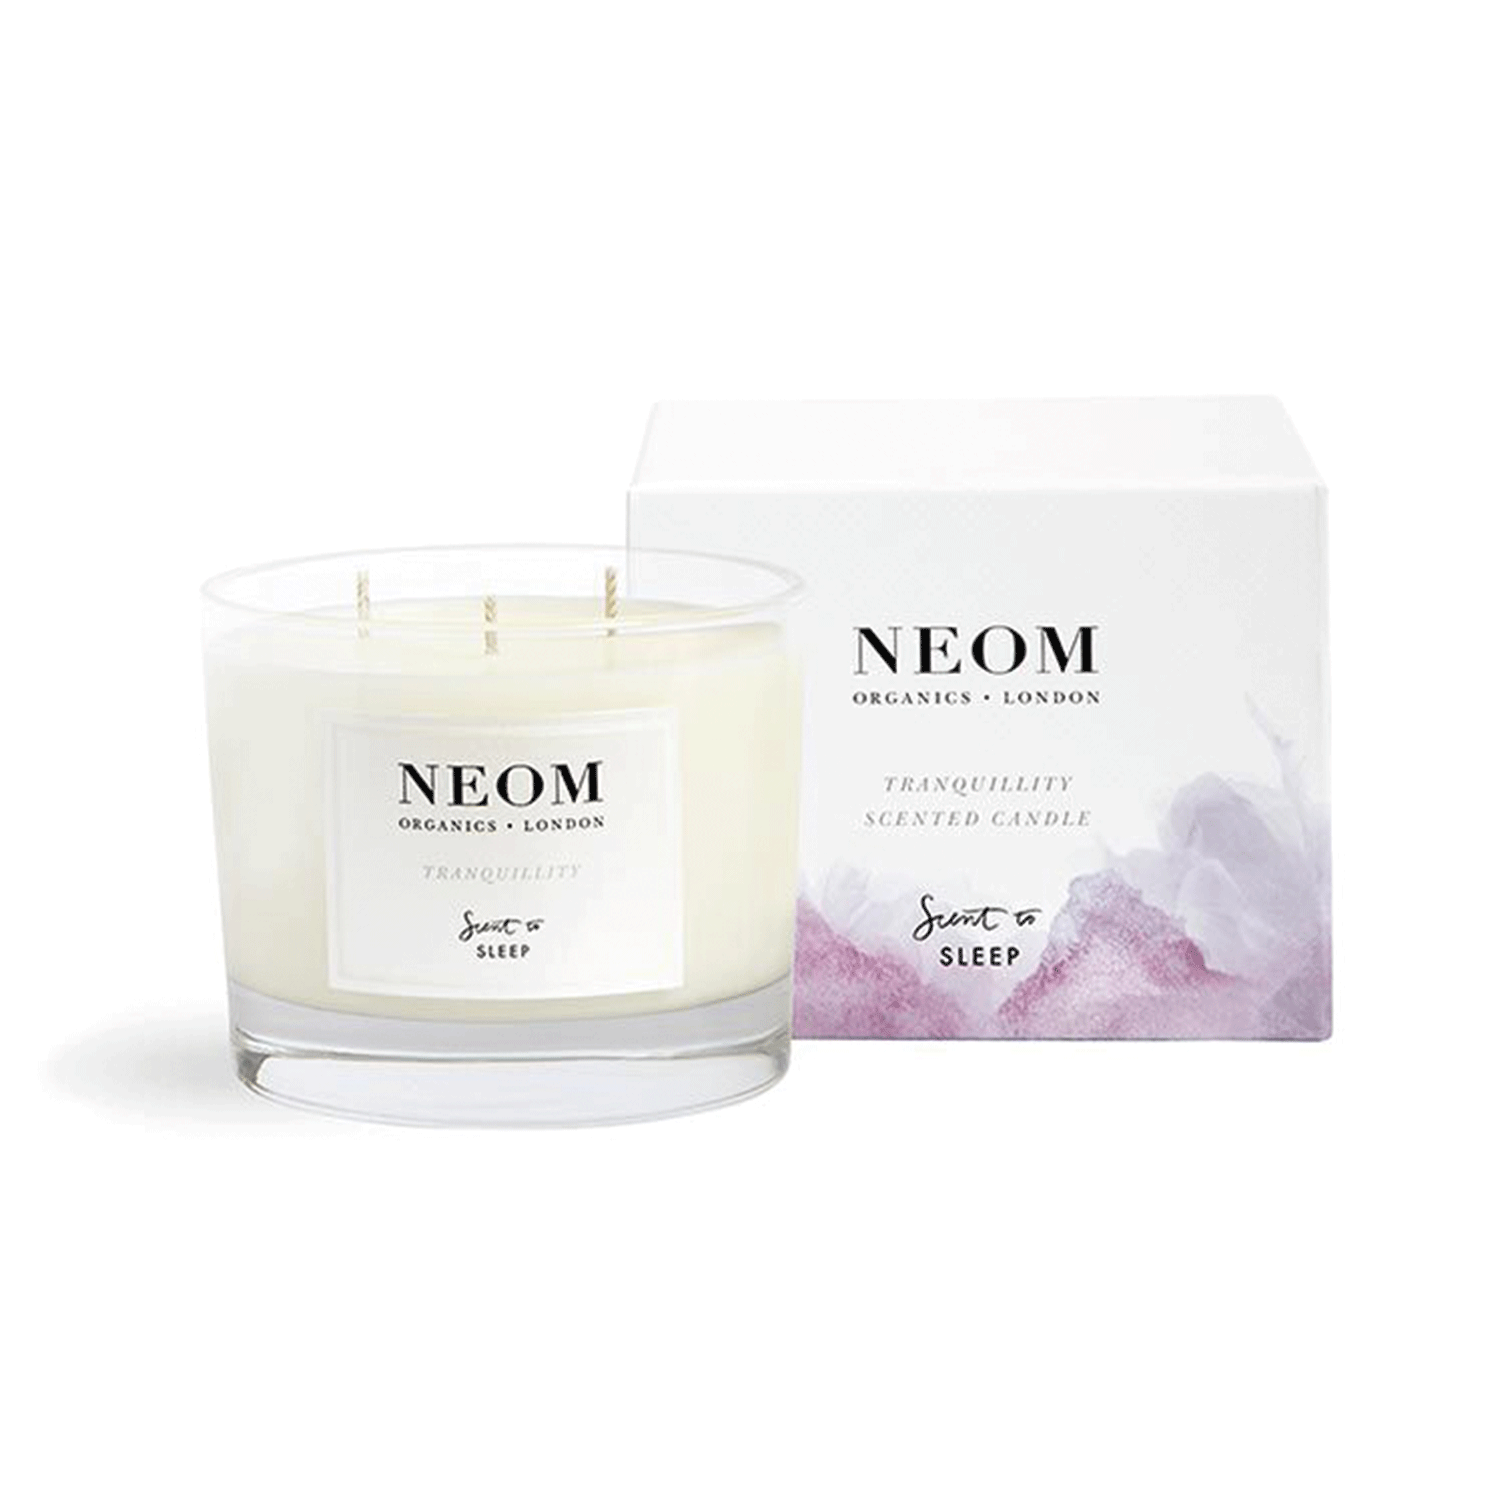 Buy Tranqulity 3 Wick Scented Candle from Neom Organics ...